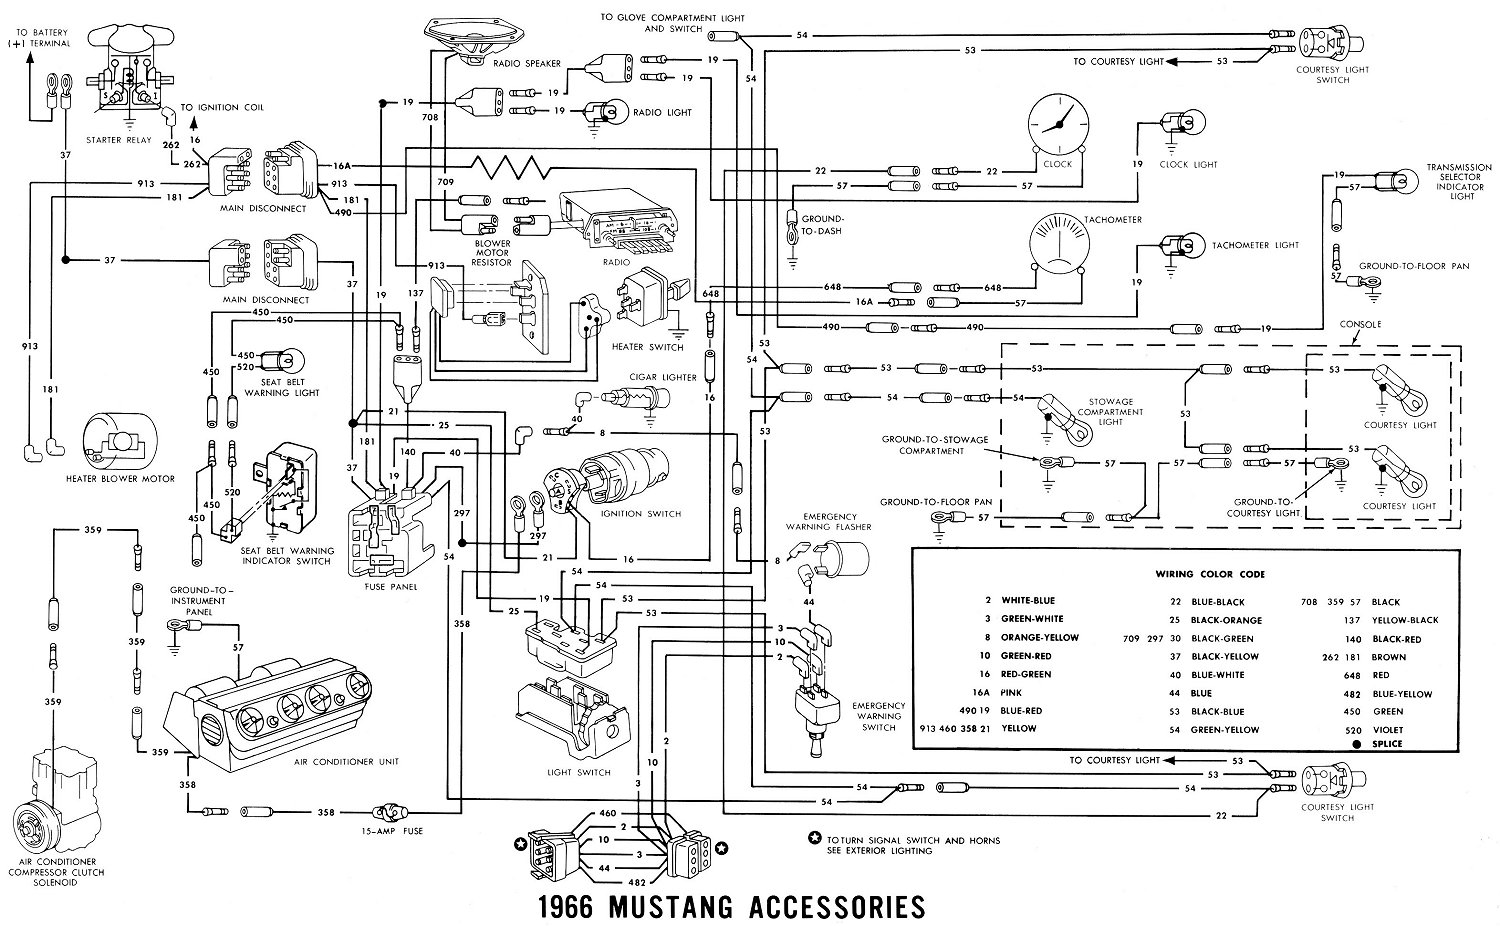 66acces1 1966 mustang wiring diagrams average joe restoration ford mustang wiring diagram at cos-gaming.co